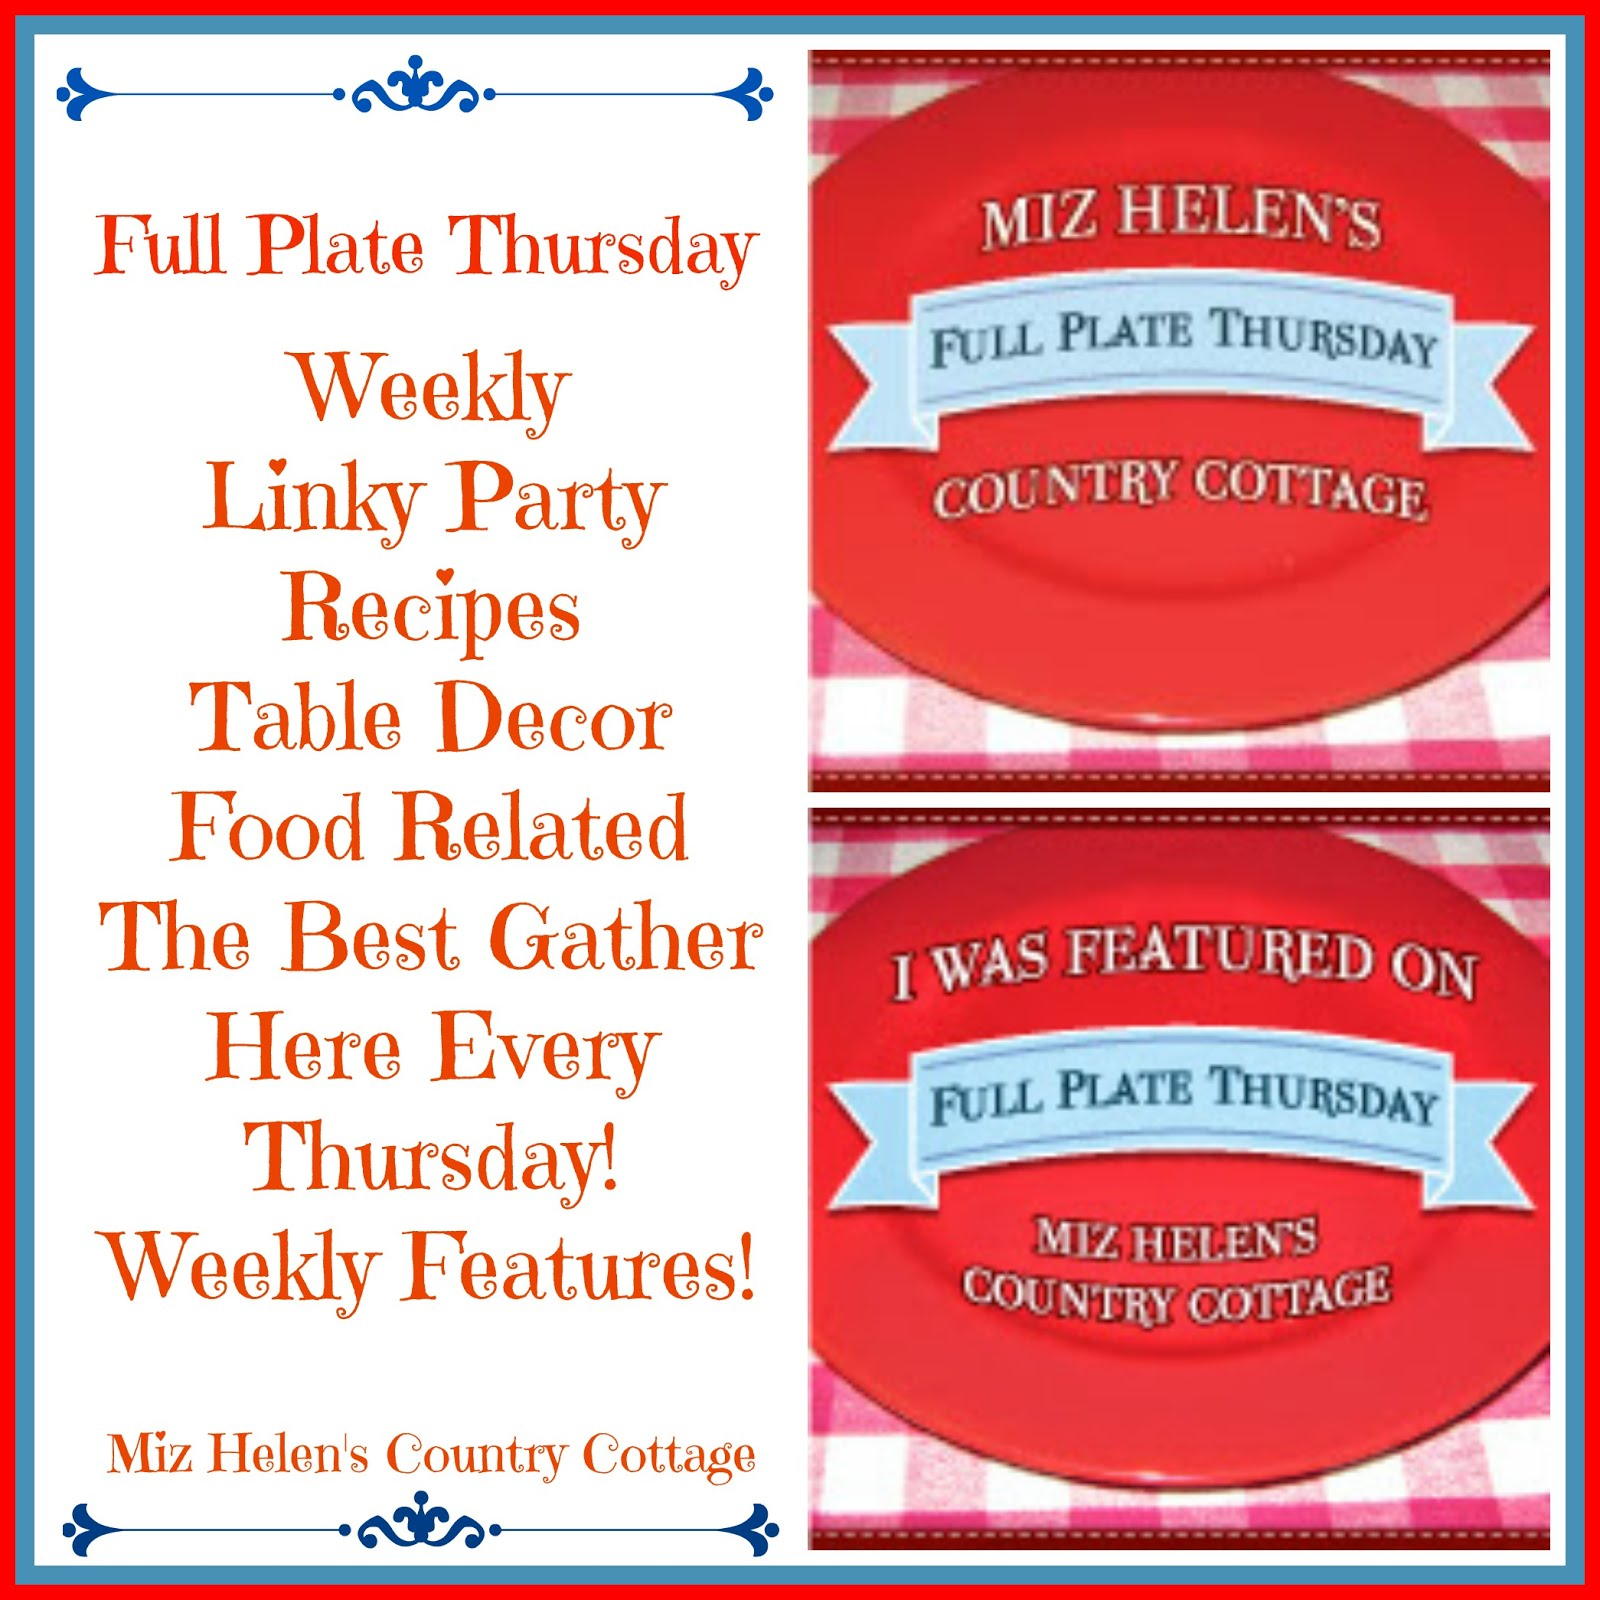 Full Plate Thursday,445 Current Party